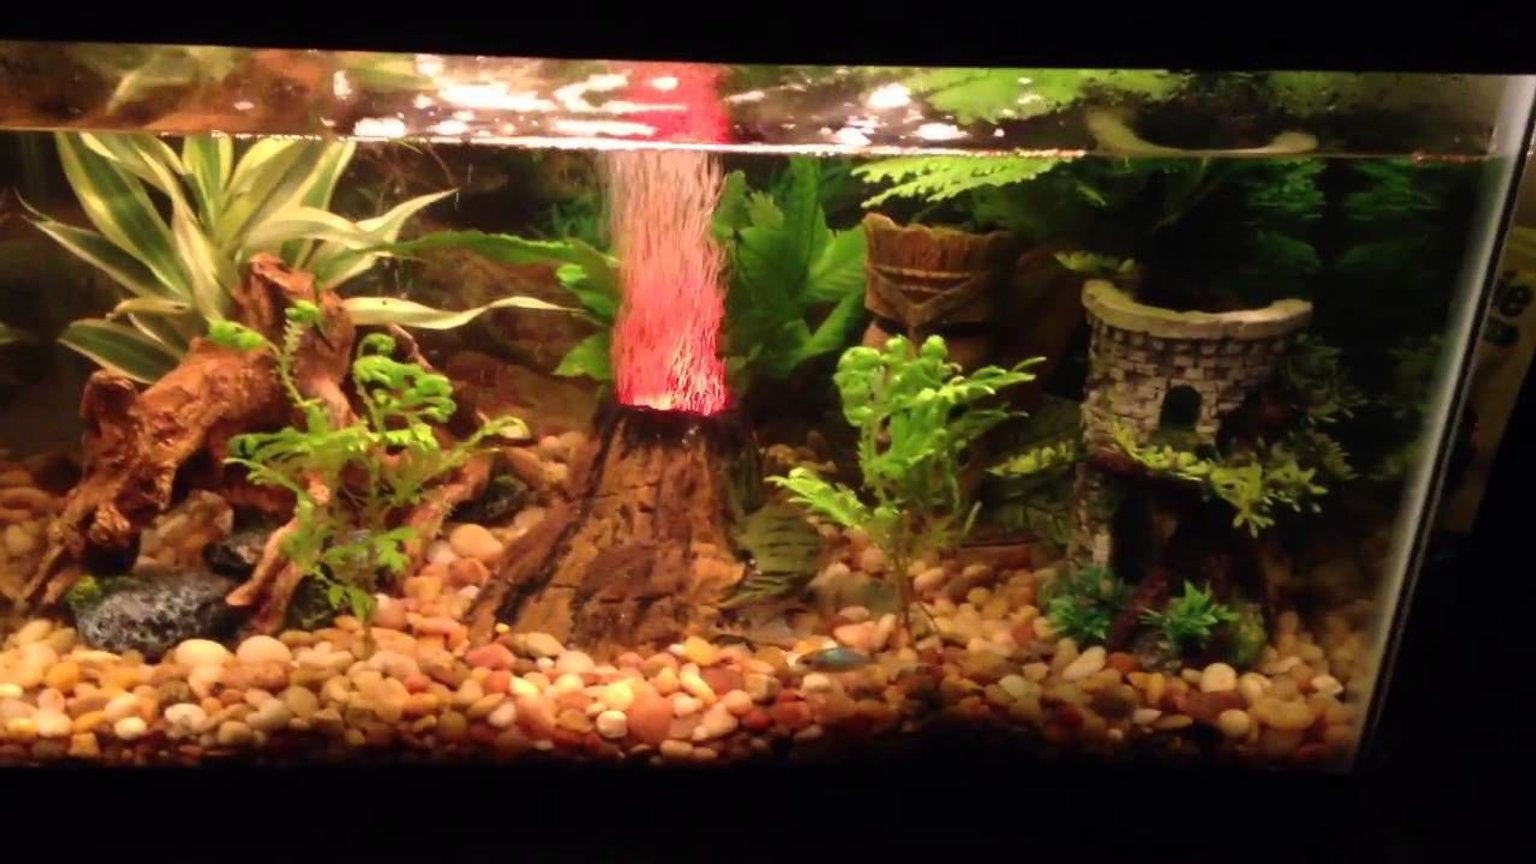 10 gallons freshwater fish tank (mostly fish and non-living decorations) - This is mine